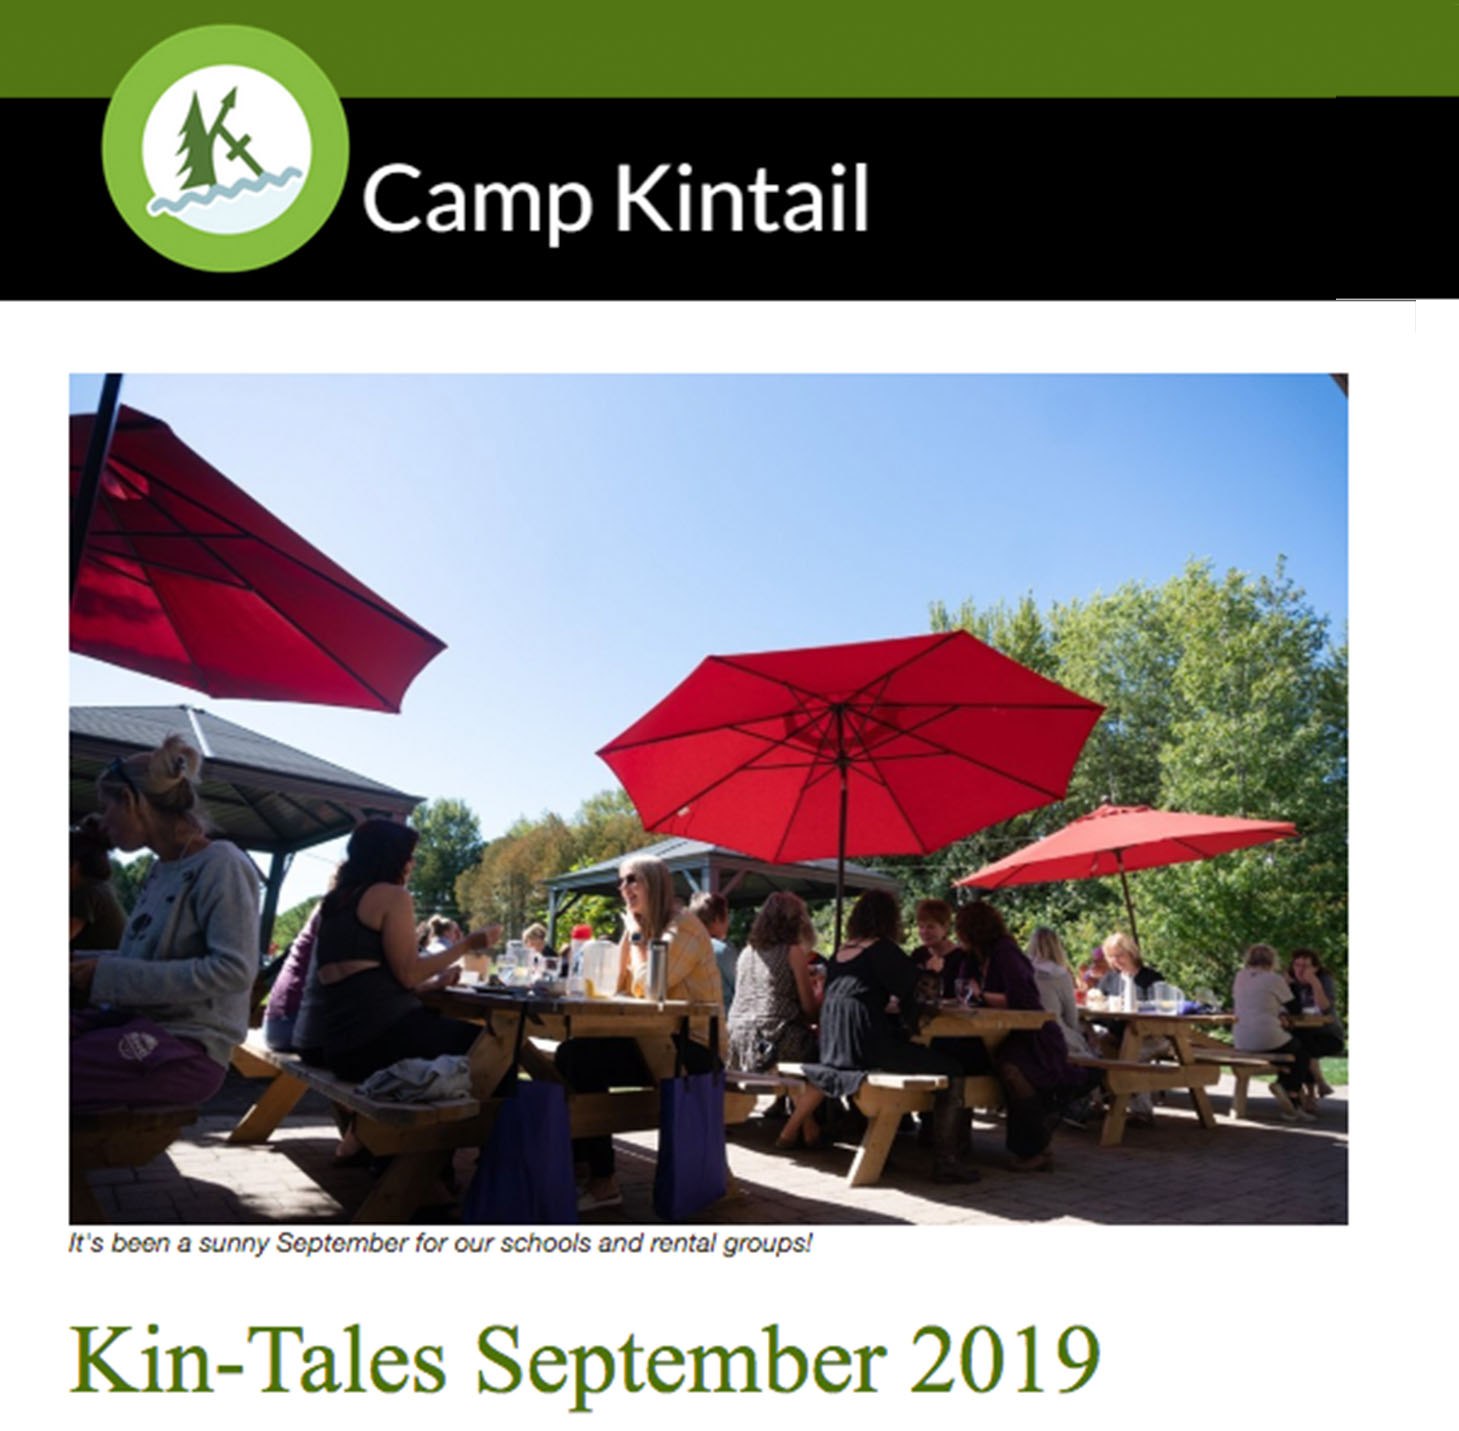 Title text: Kin-Tales September 2019. Image: Red umbrellas on picnic tables.